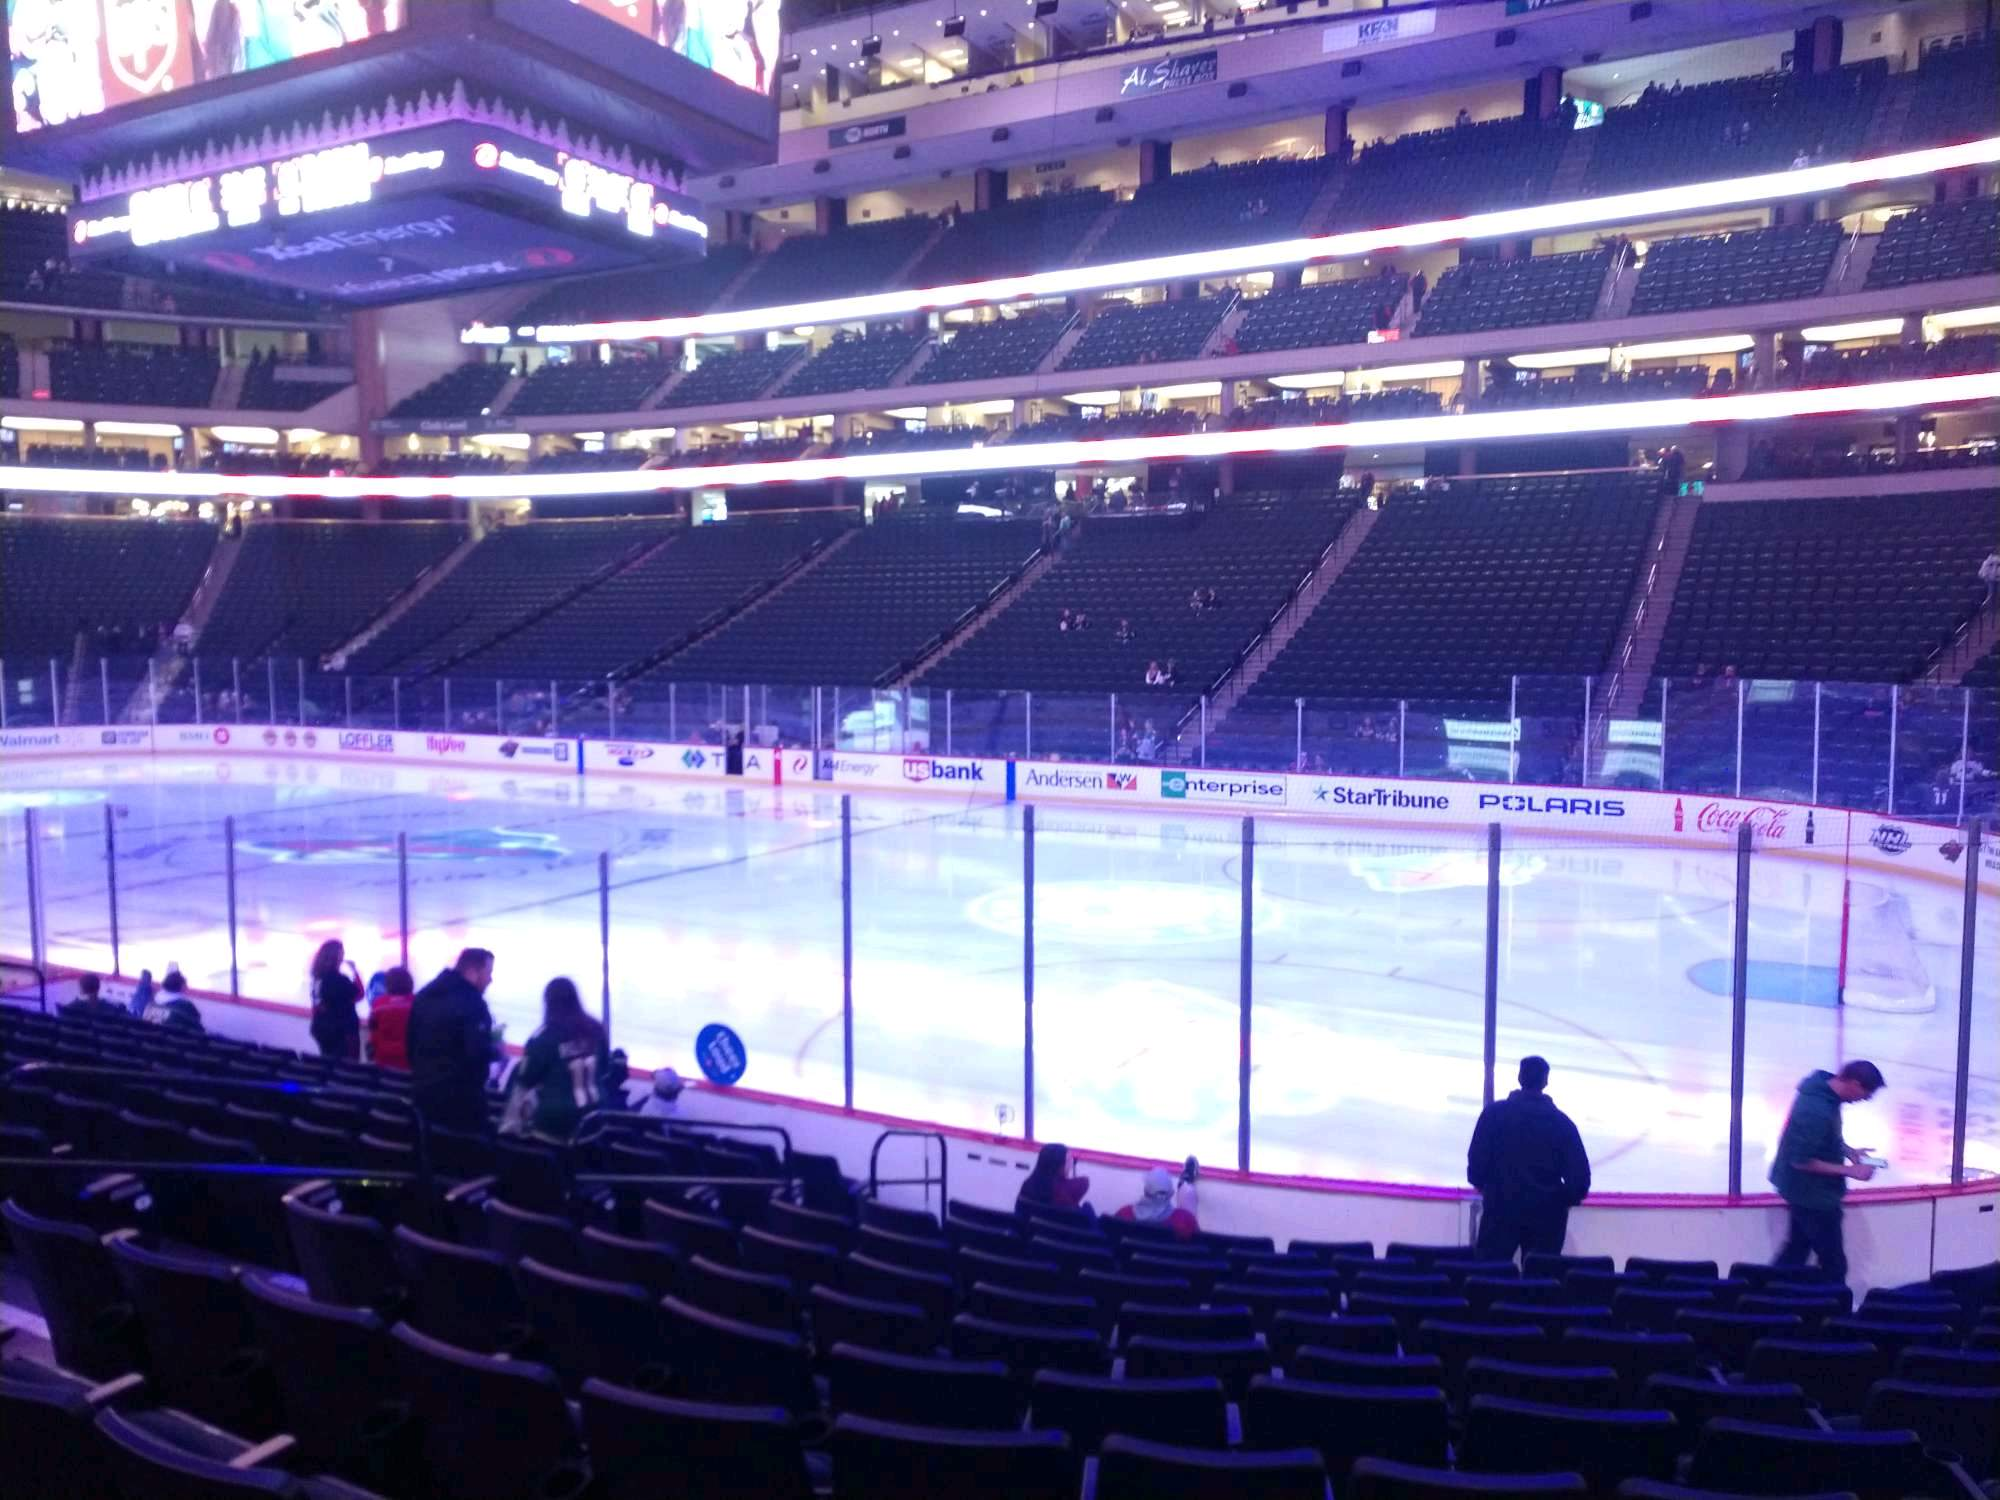 Xcel Energy Center Section 114 Row 12 Seat 4